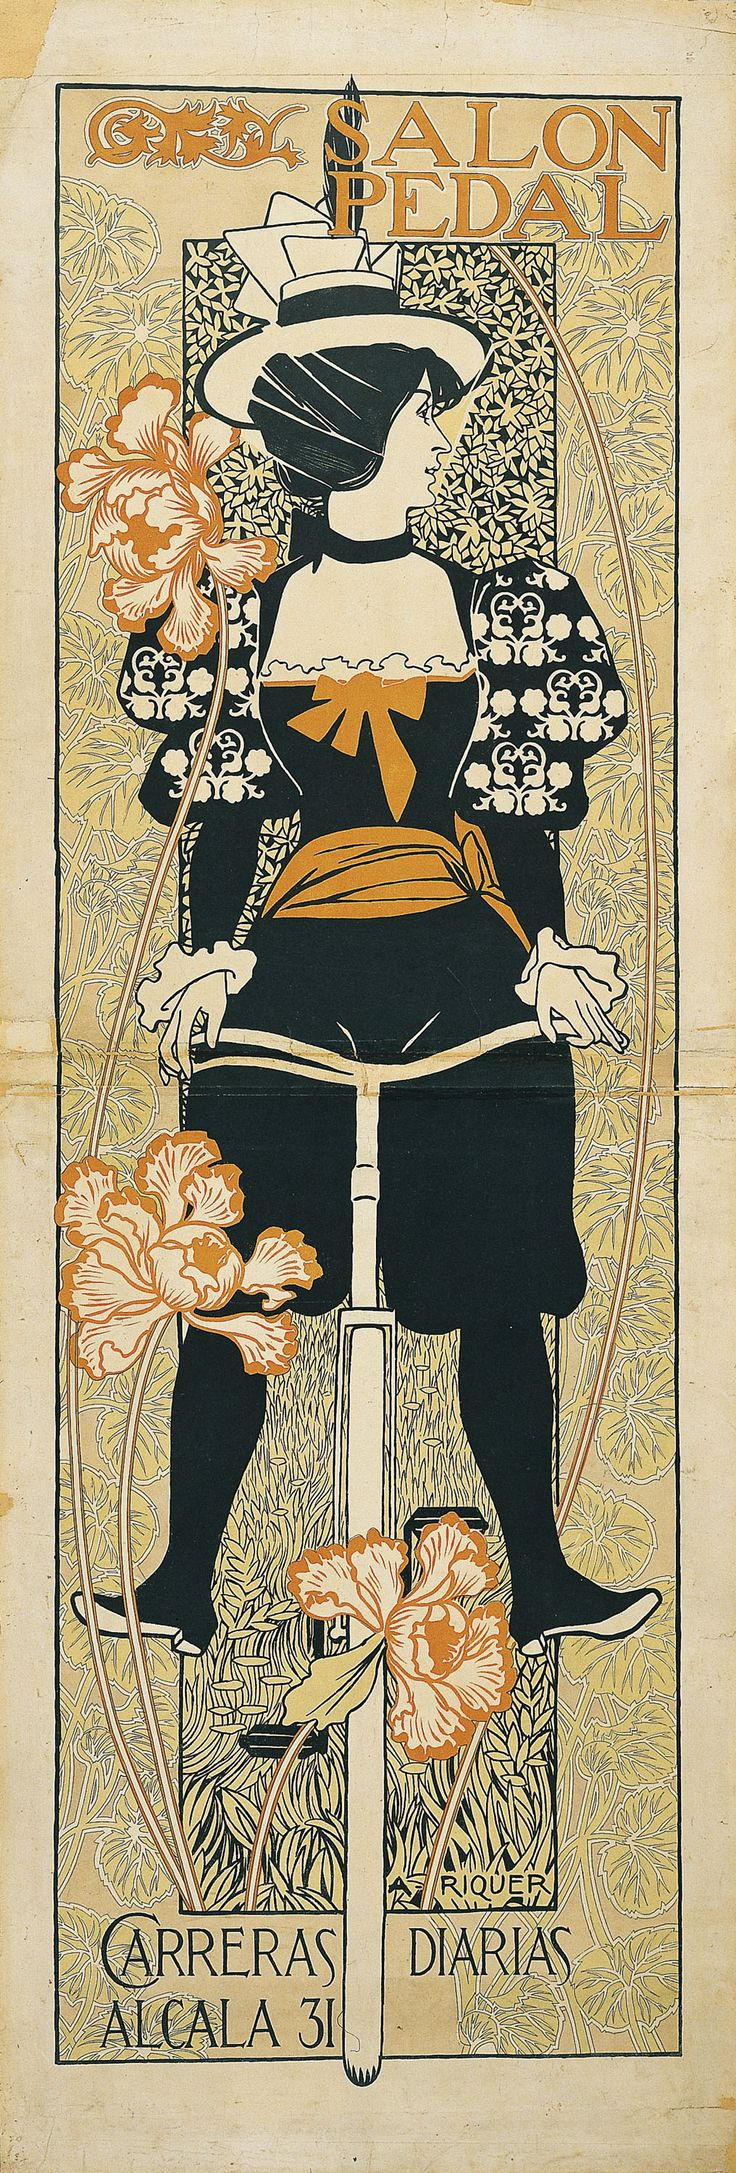 Salon Pedal. Colour lithograph on paper, 139.4 x 48.5 cm, 1897. Artist: Alexandre de Riquer